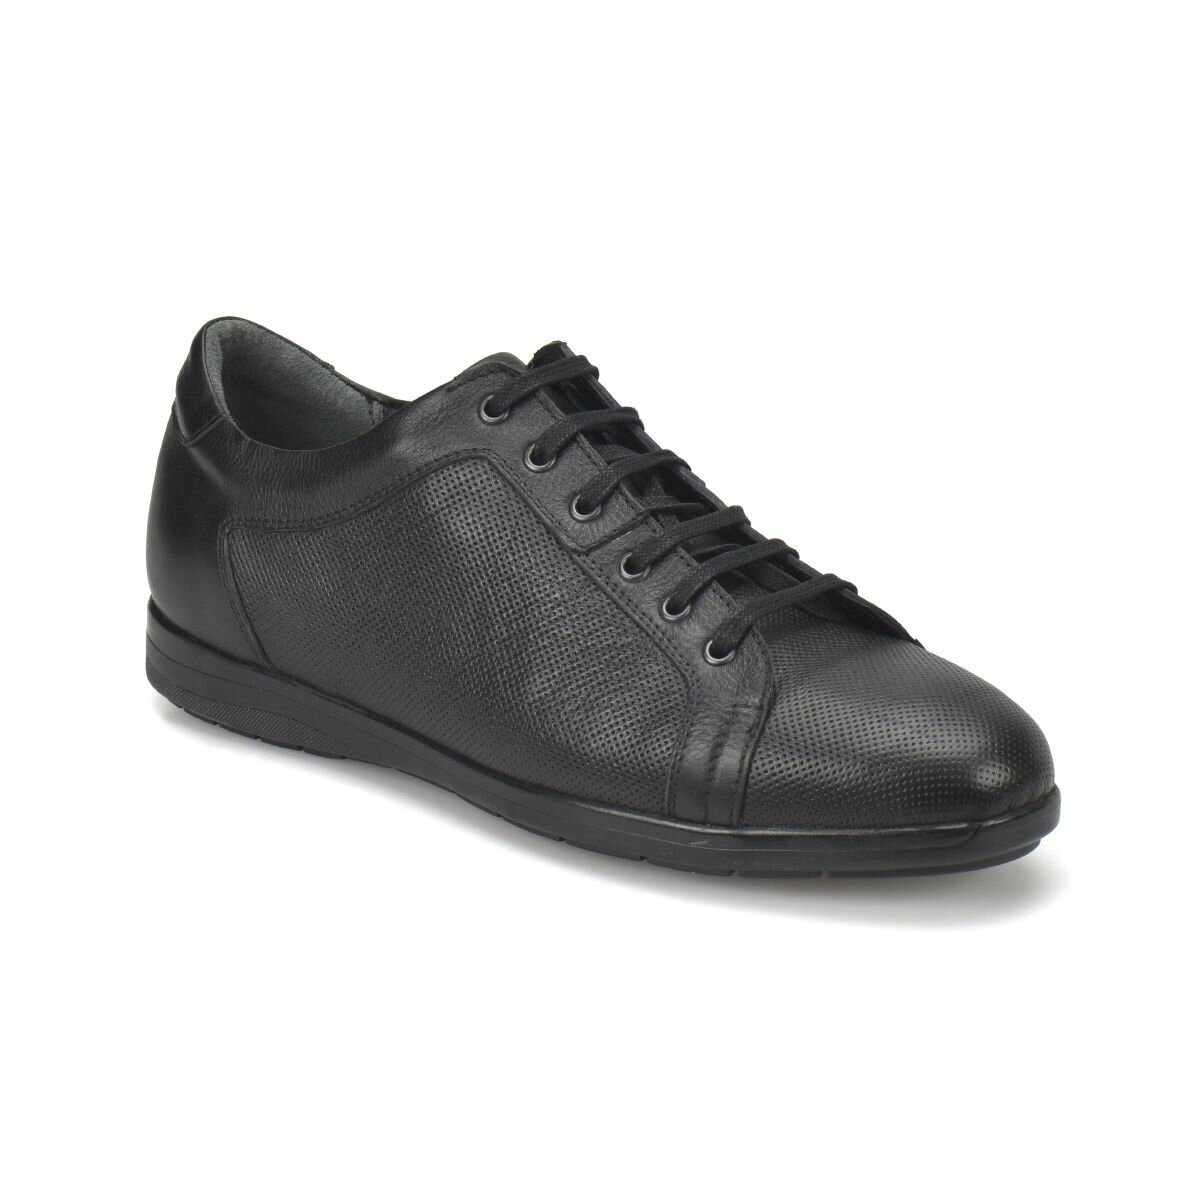 FLO 062-4 Black Male Shoes Flogart